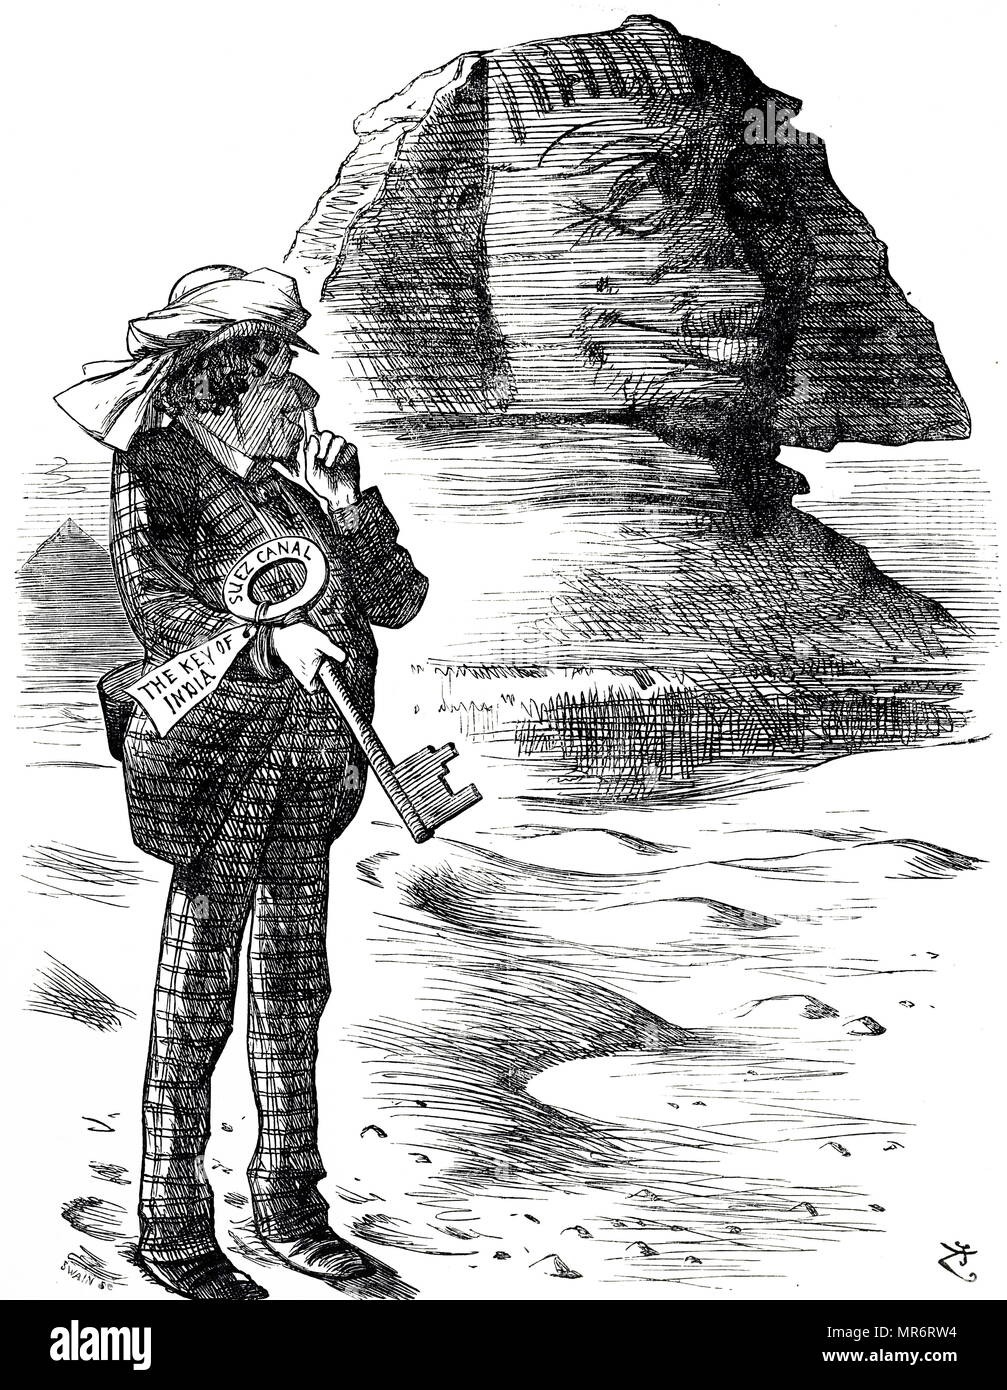 Cartoon depicting Prime Minister Benjamin Disraeli holding the Suez Canal as the key to the British possession and influence in India. John Tenniel (1820-1914) an English illustrator, graphic humourist, and political cartoonist. Dated 19th century - Stock Image